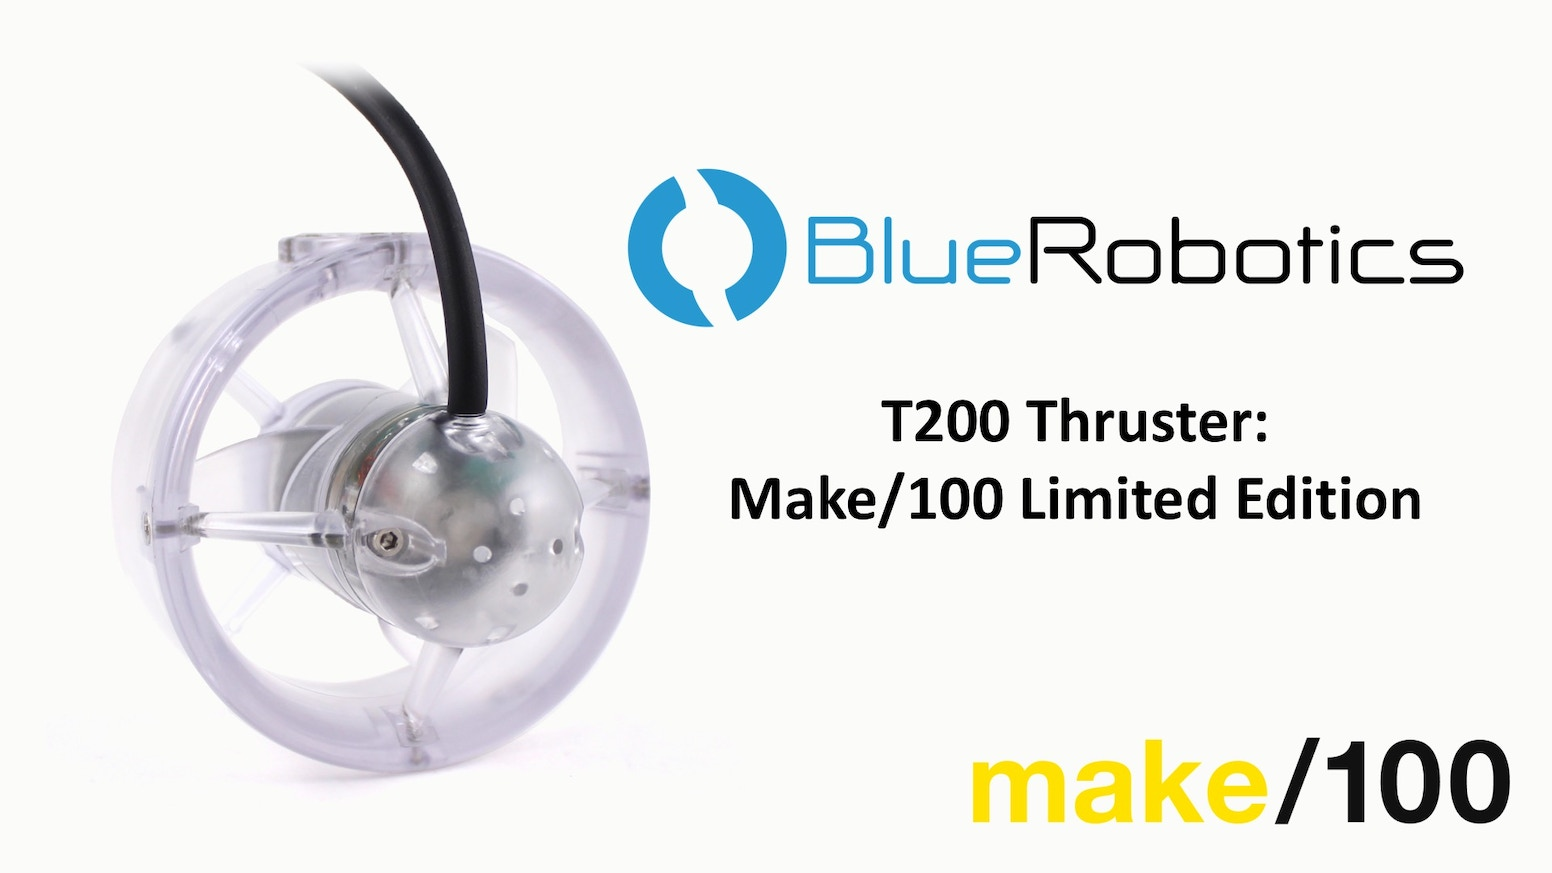 Two years ago, we launched the T100 Thruster for marine robotics. Today we commemorate that with a Make/100 limited edition thruster!